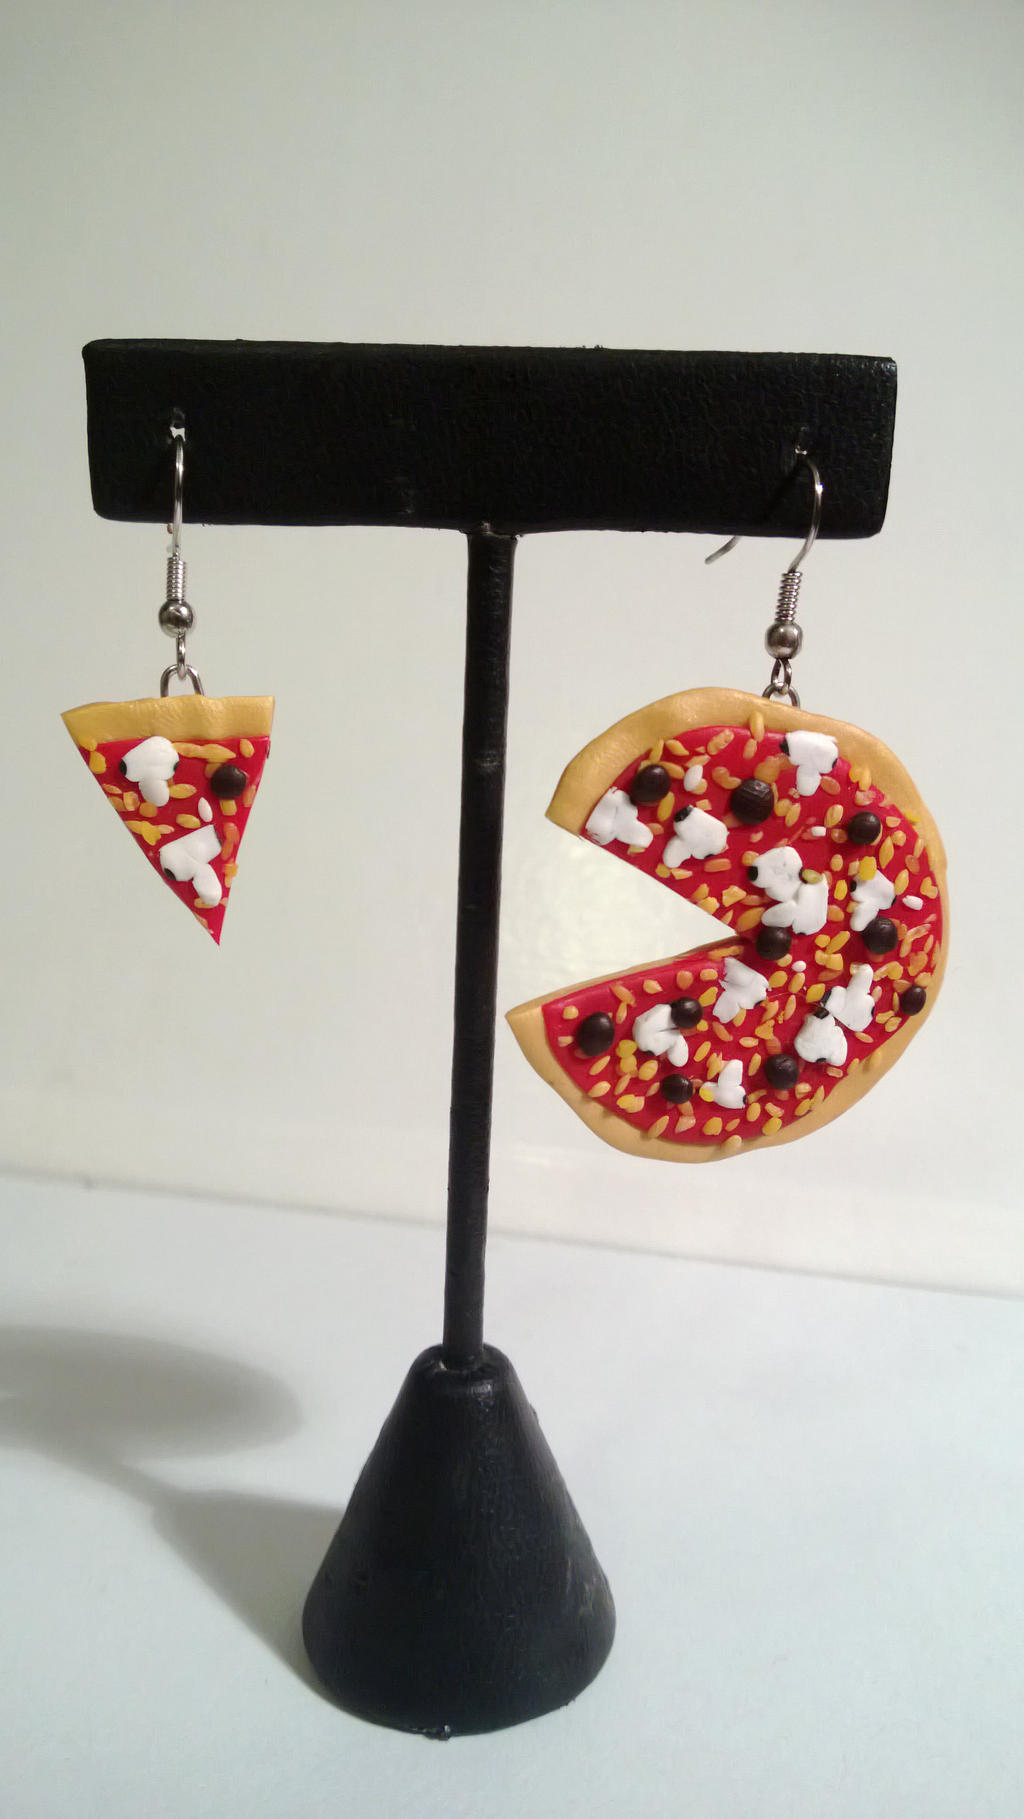 Pizza and Slice by pun